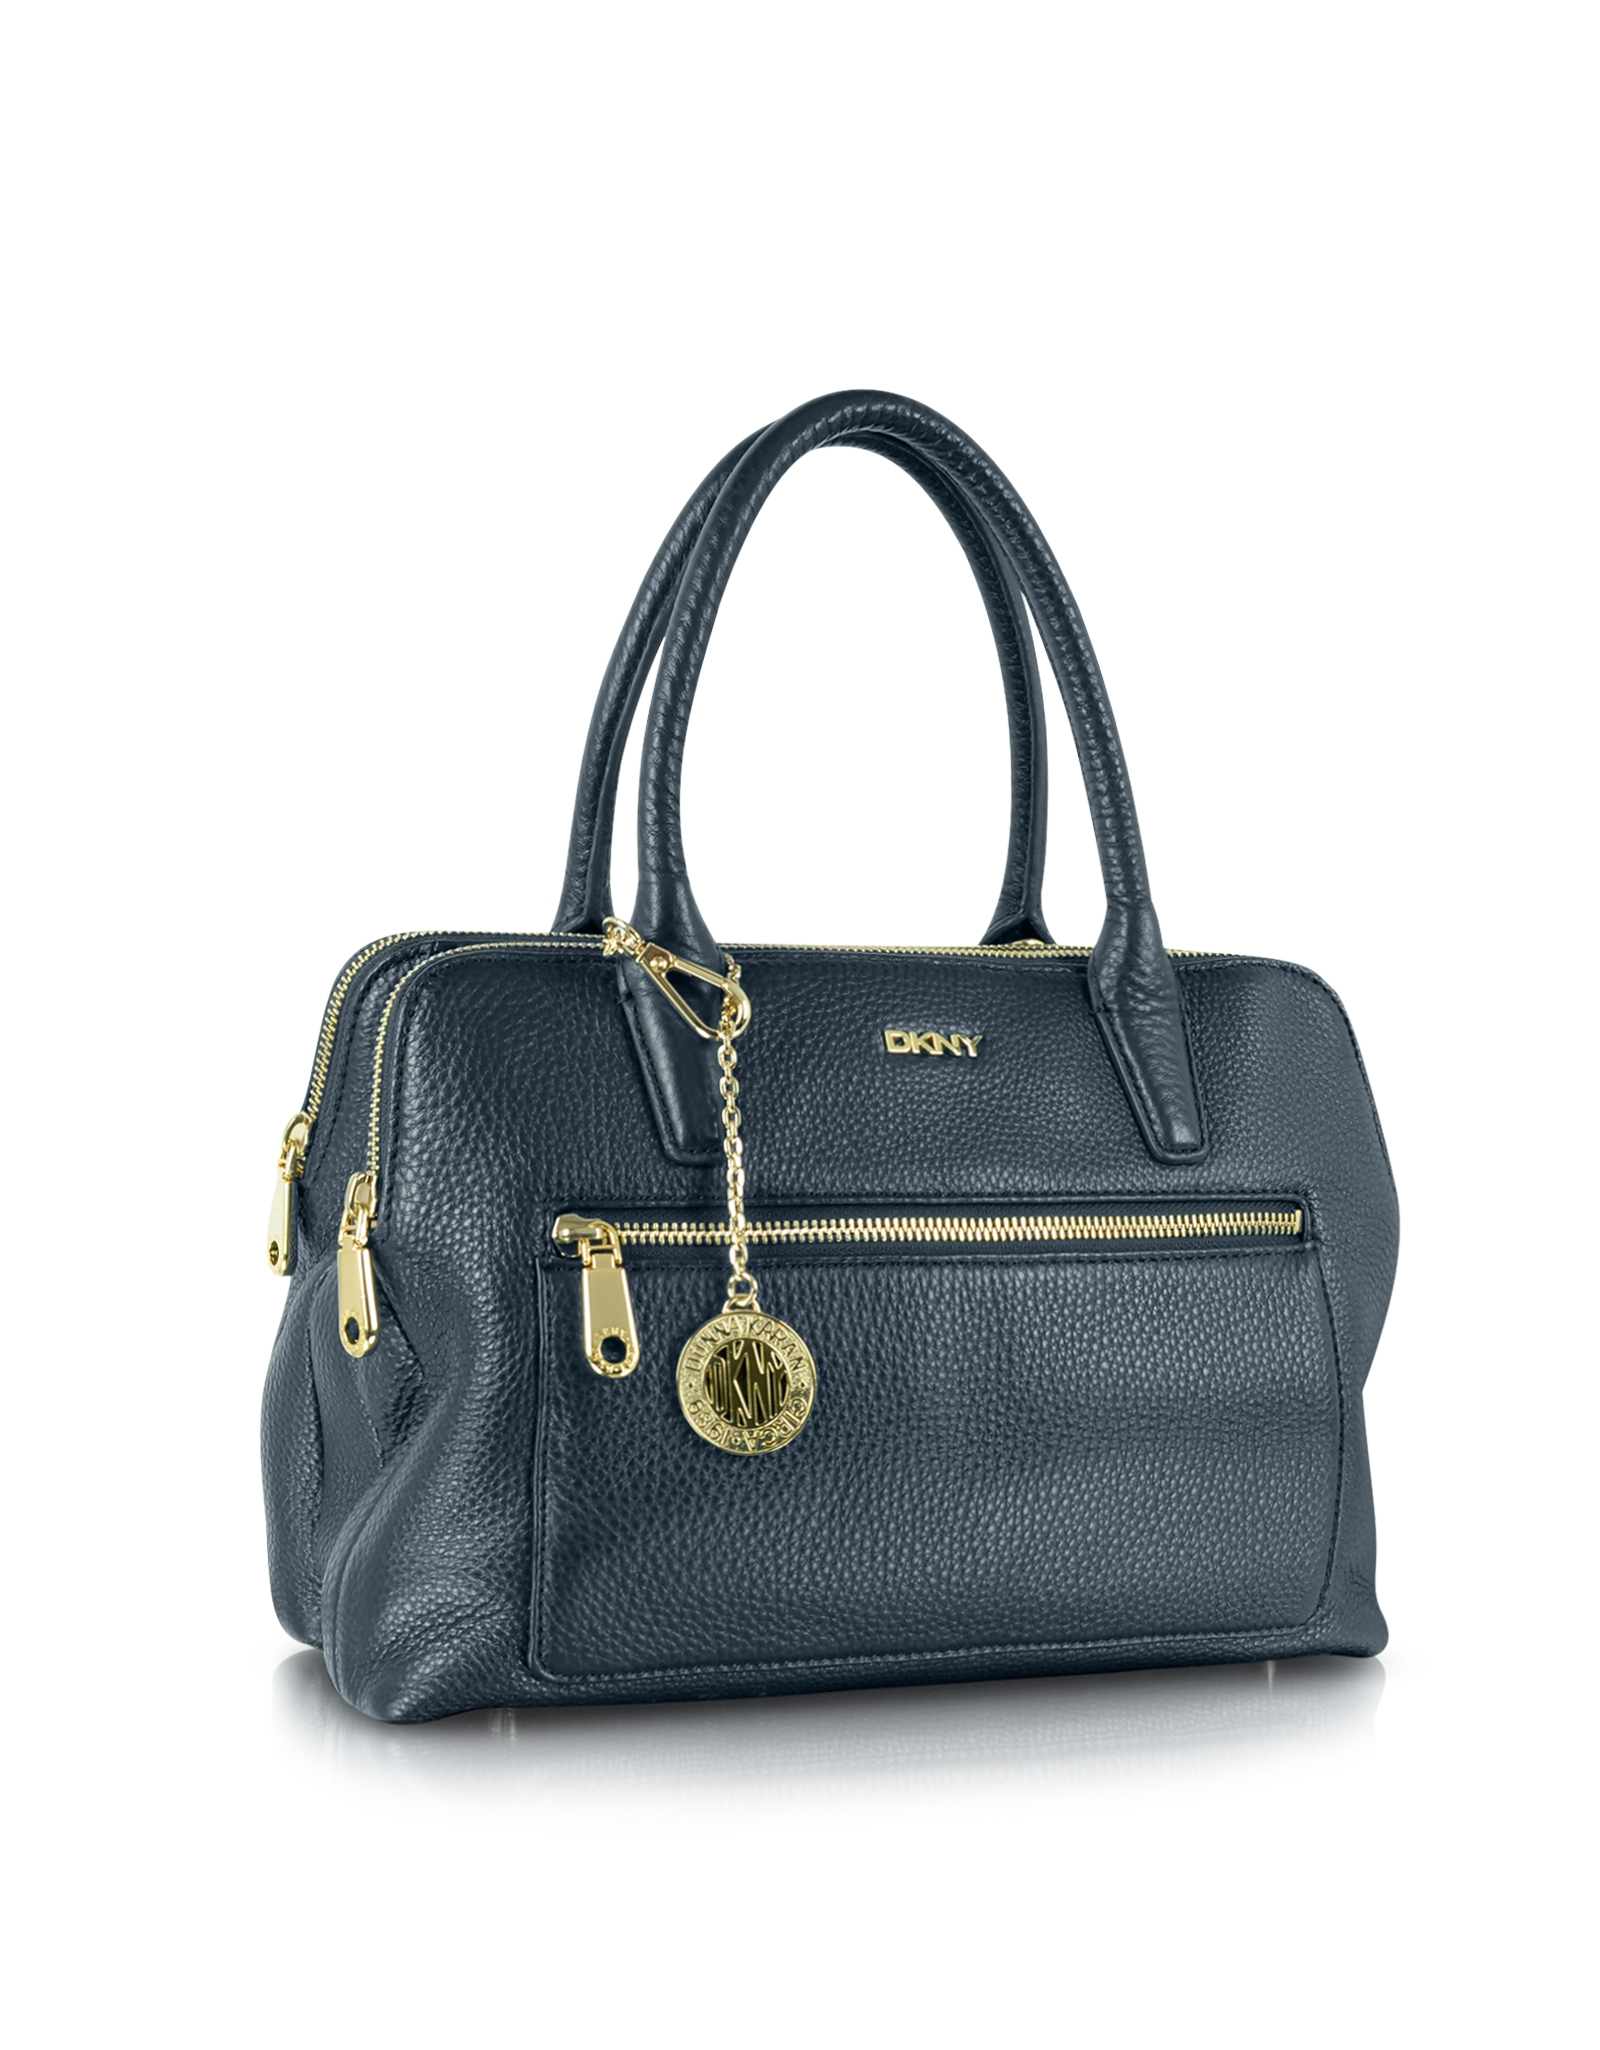 Dkny Tribeca Double Zip Leather Satchel Bag W/Shoulder Strap in ...